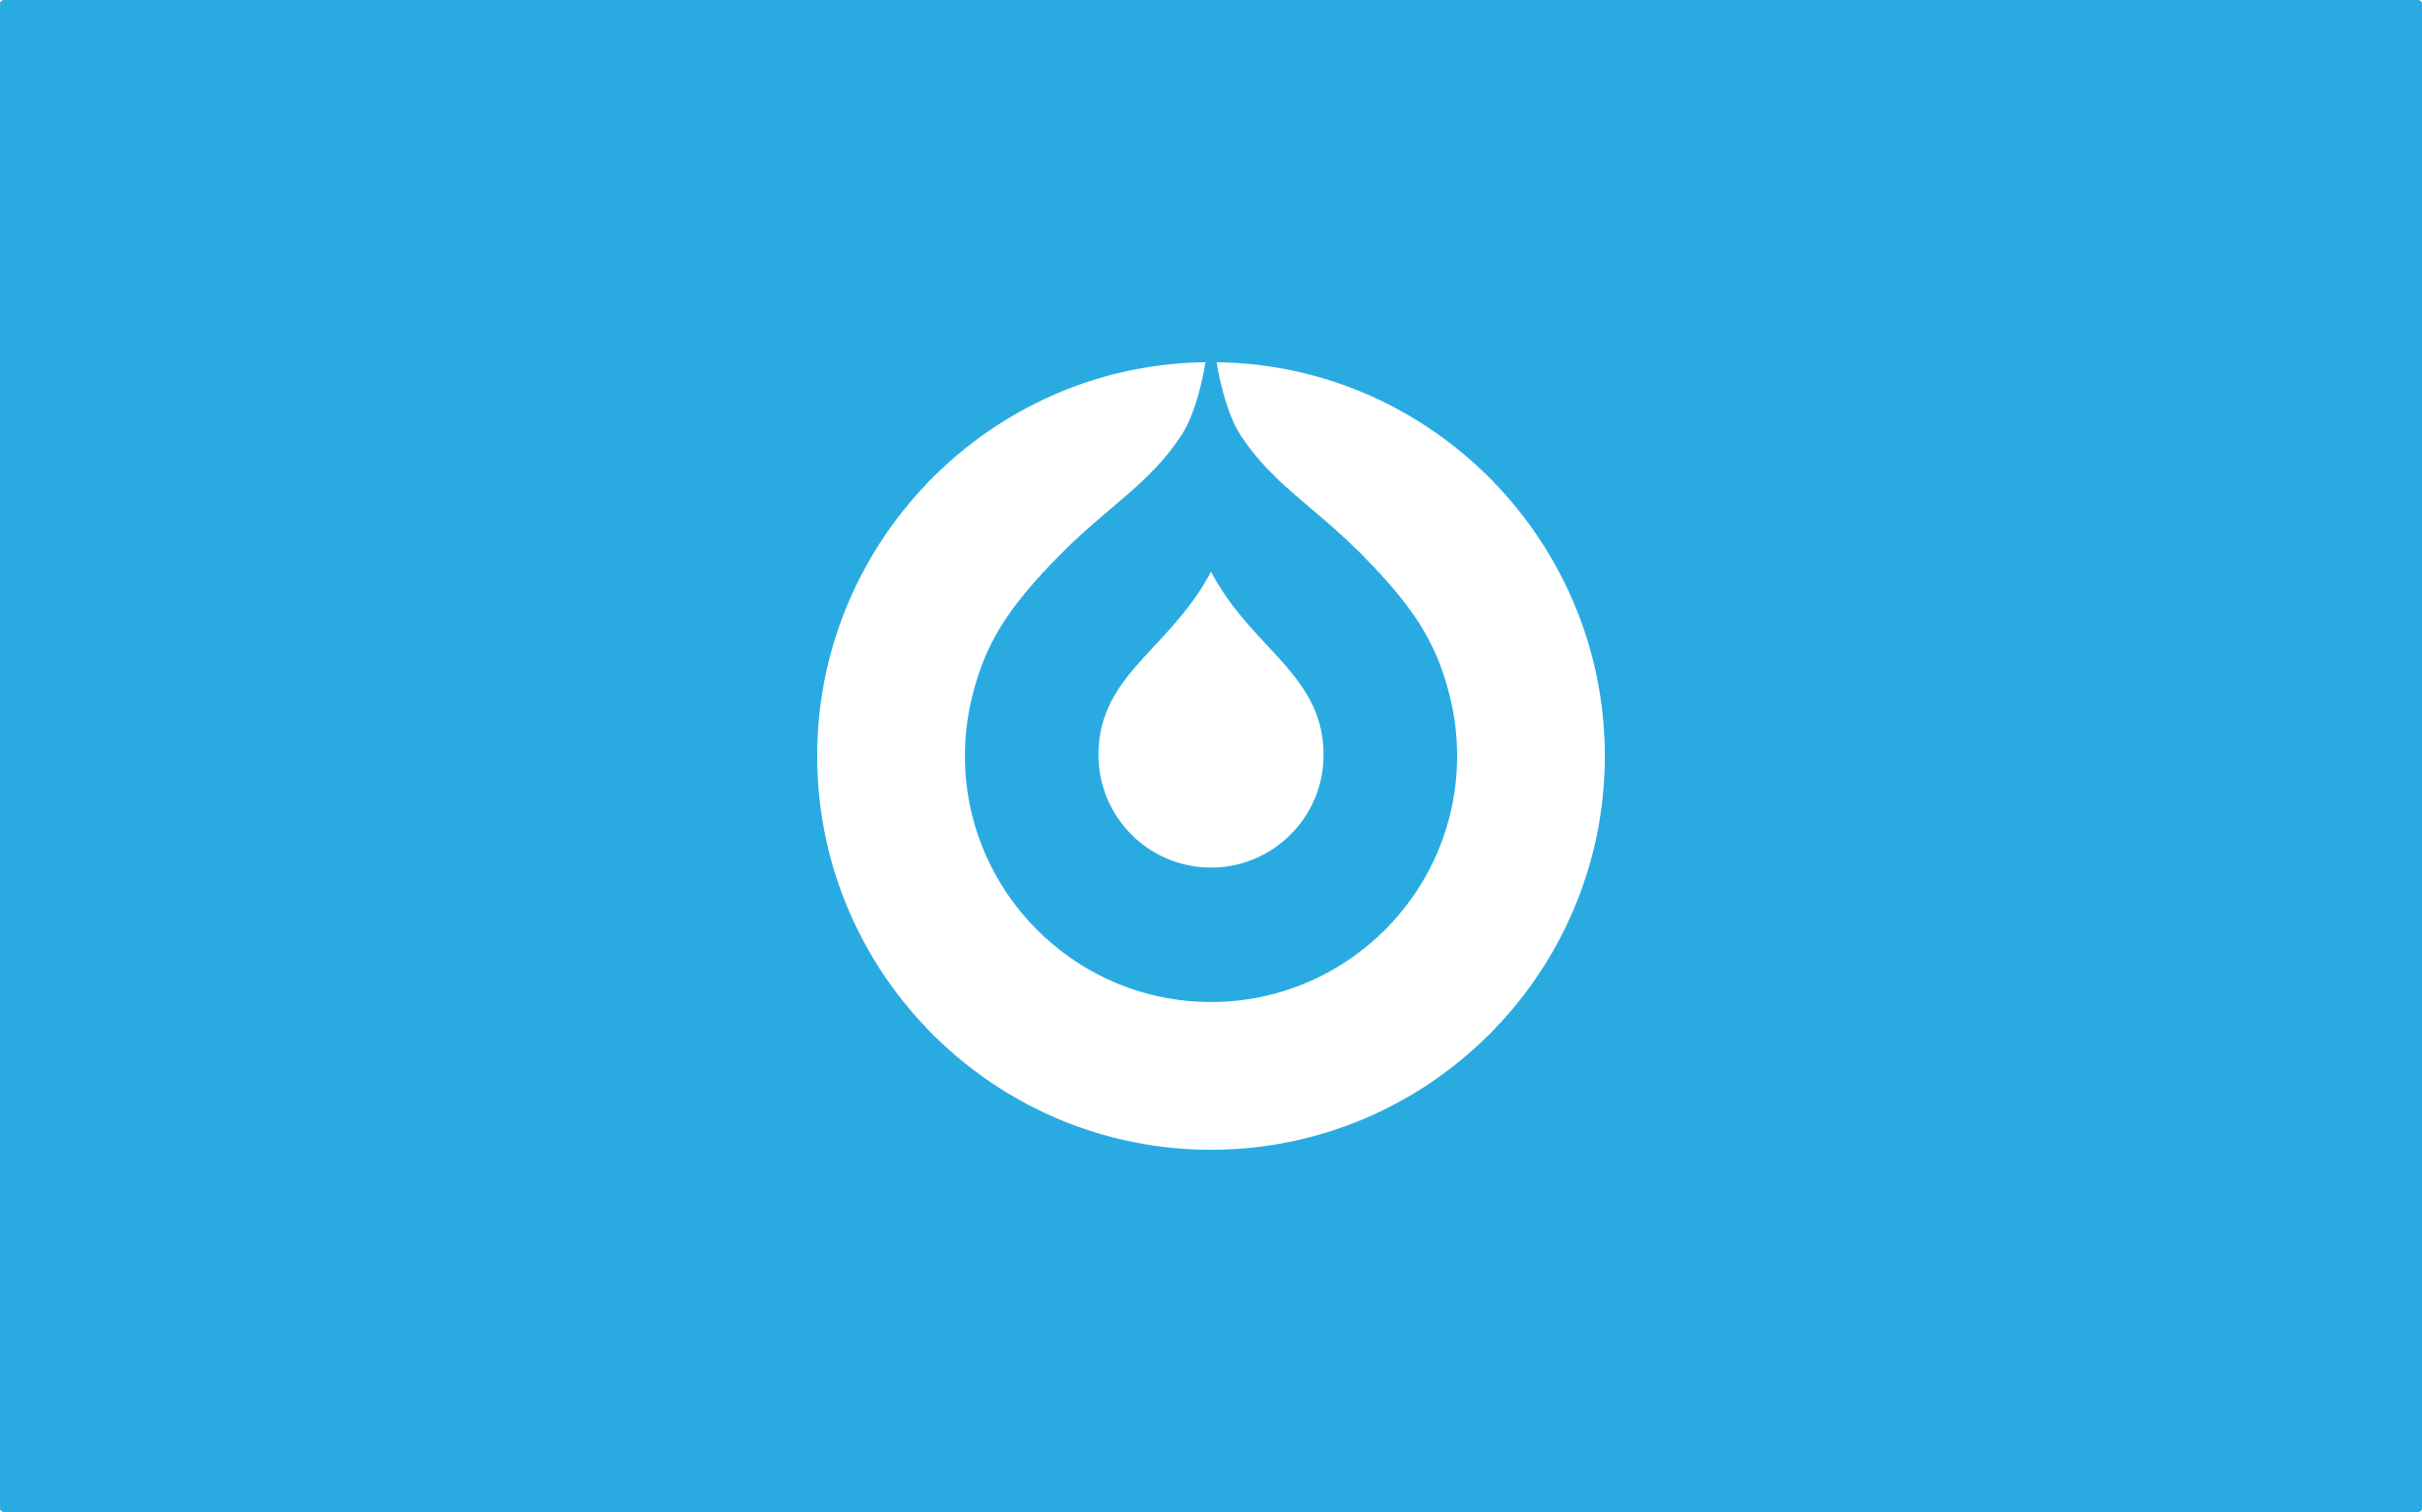 Osmo's drop logo hints at the hydration power of the product.